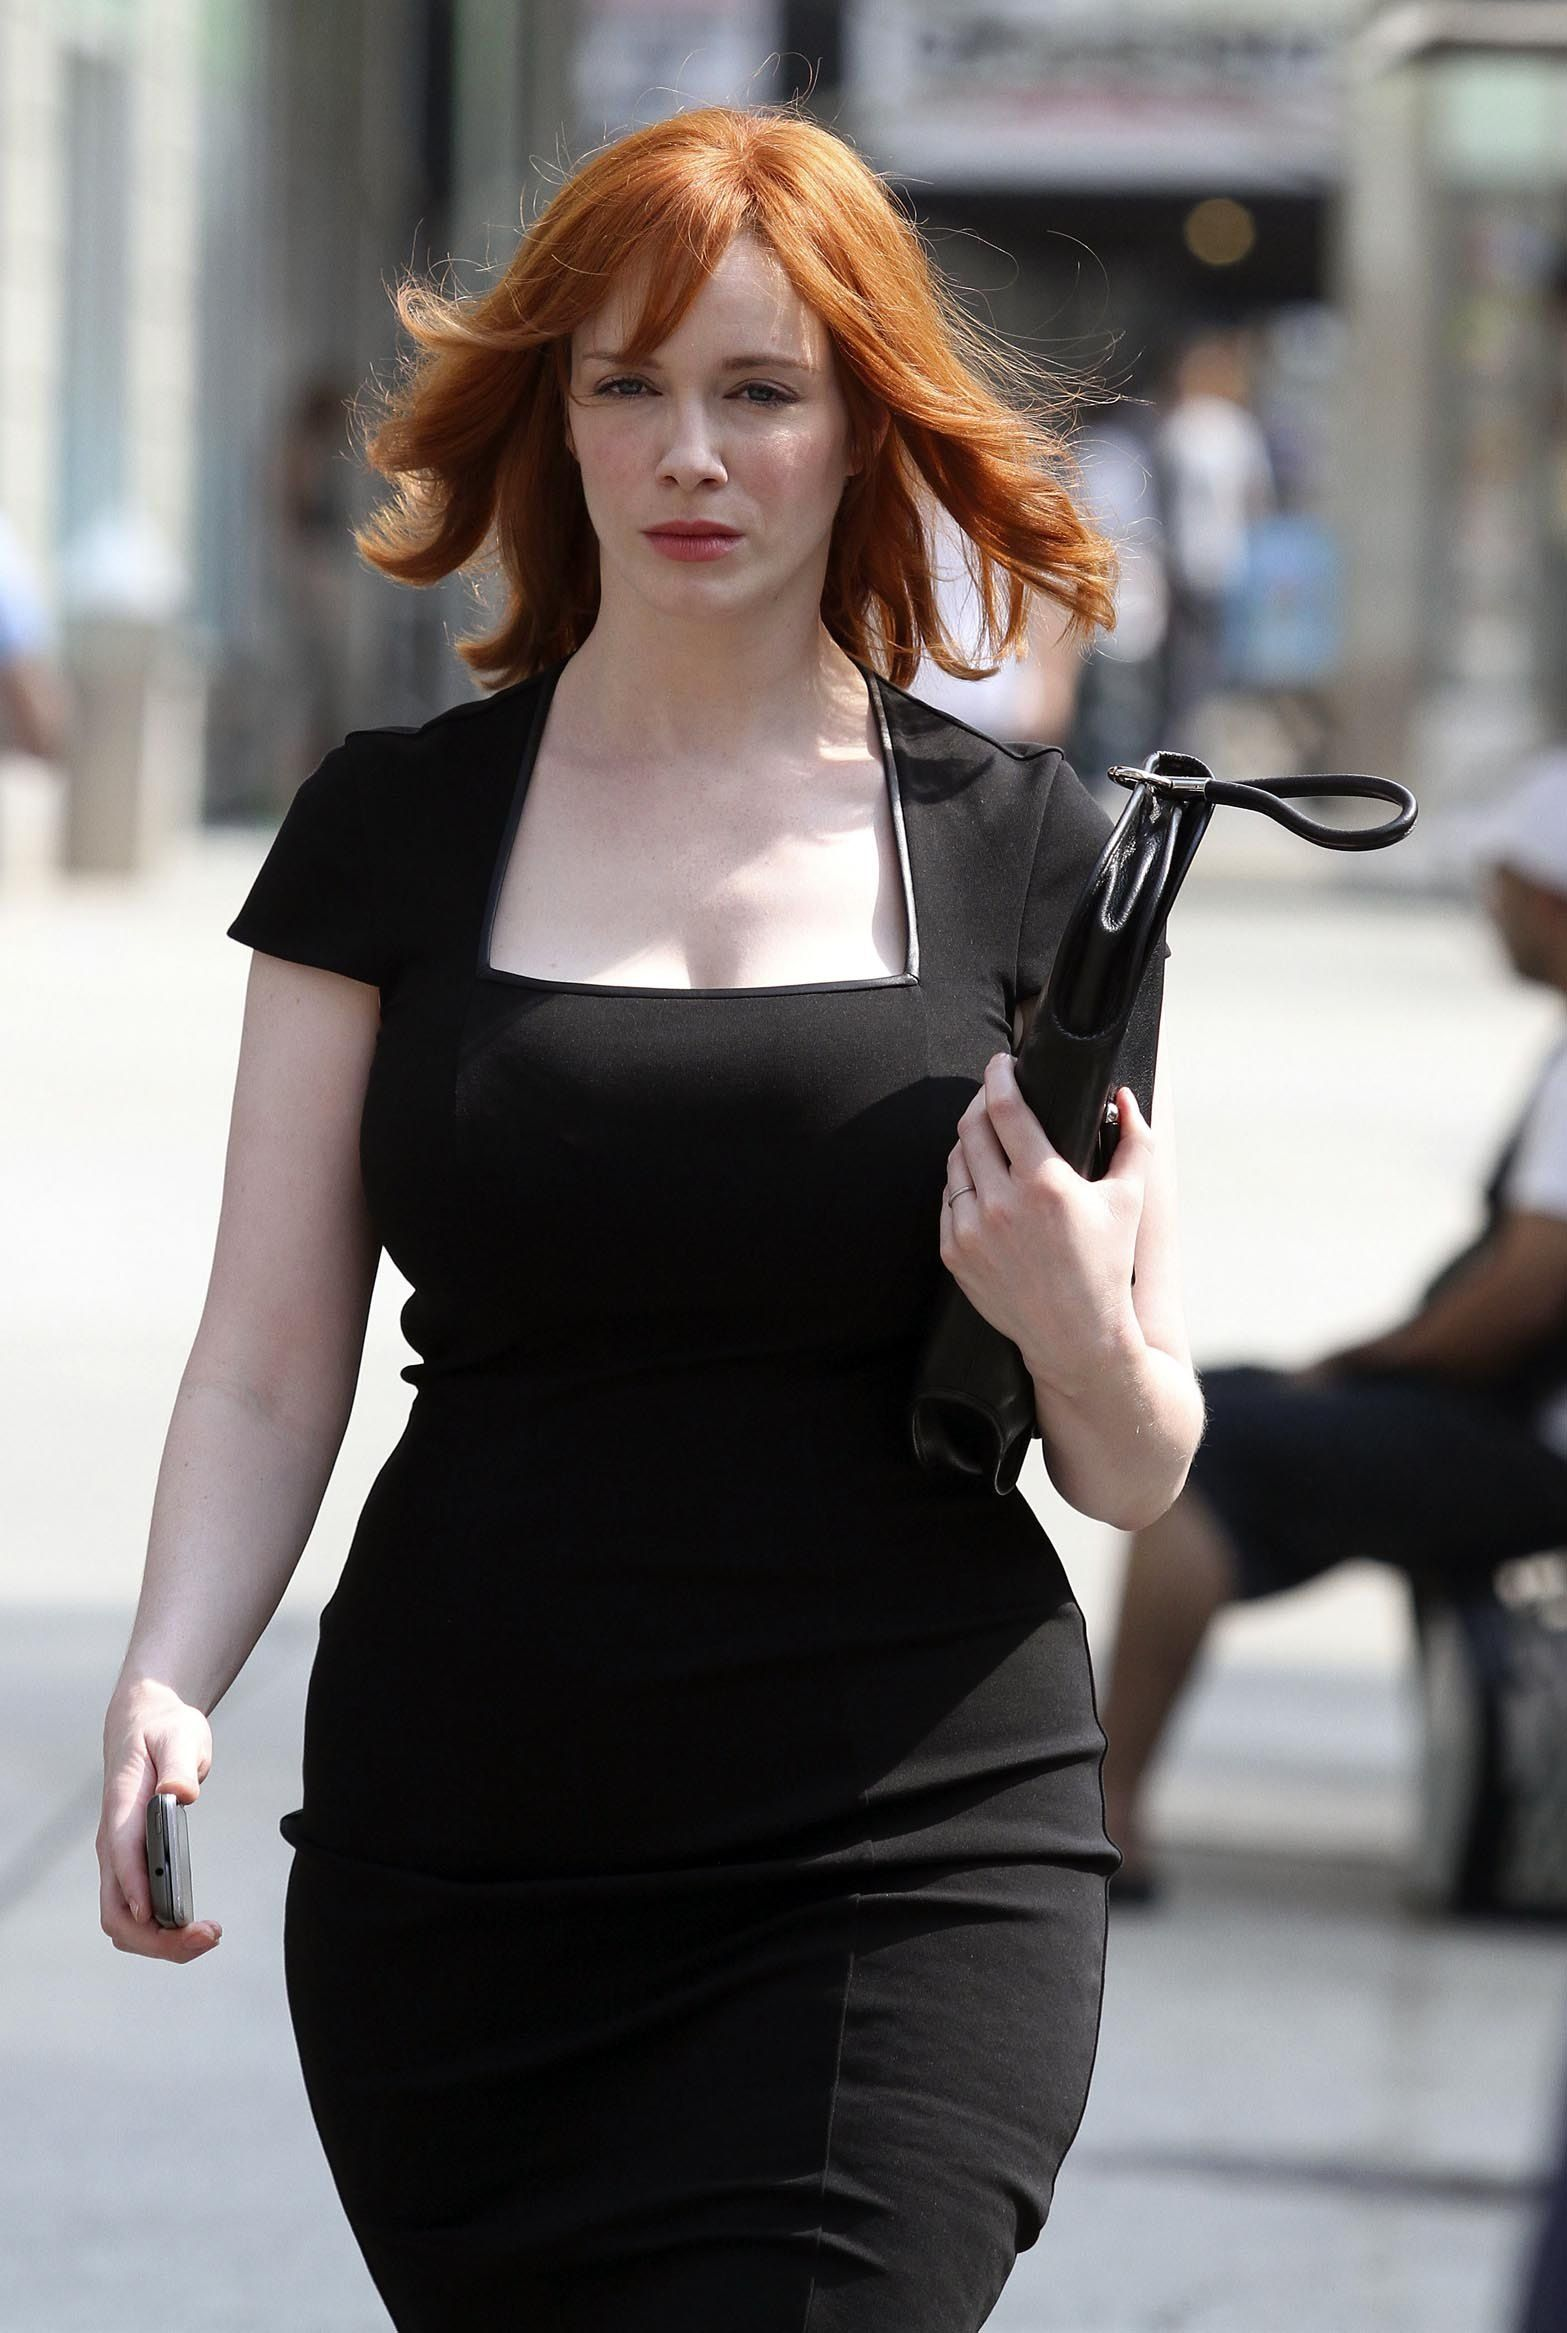 christina hendricks instagramchristina hendricks фото, christina hendricks 2016, christina hendricks 2017, christina hendricks drive, christina hendricks wallpaper, christina hendricks википедия, christina hendricks facebook, christina hendricks listal, christina hendricks imdb, christina hendricks style, christina hendricks theplace, christina hendricks gif tumblr, christina hendricks company, christina hendricks net worth, christina hendricks insta, christina hendricks johnnie walker, christina hendricks red carpet, christina hendricks site, christina hendricks instagram, christina hendricks elevator